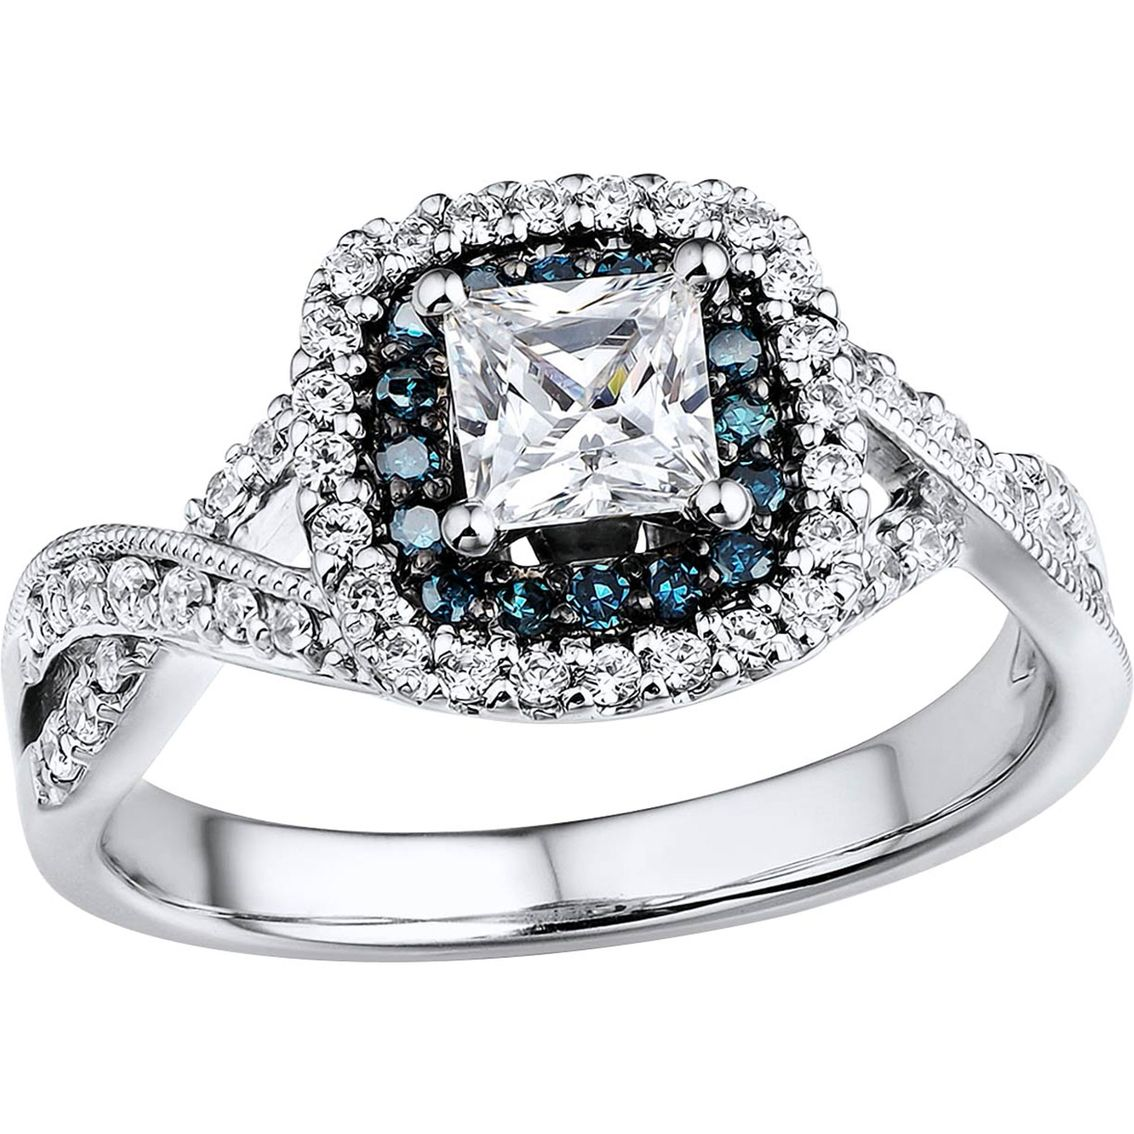 Elegant In Every Detail This Engagement Ring Boasts A 1 2 Ct